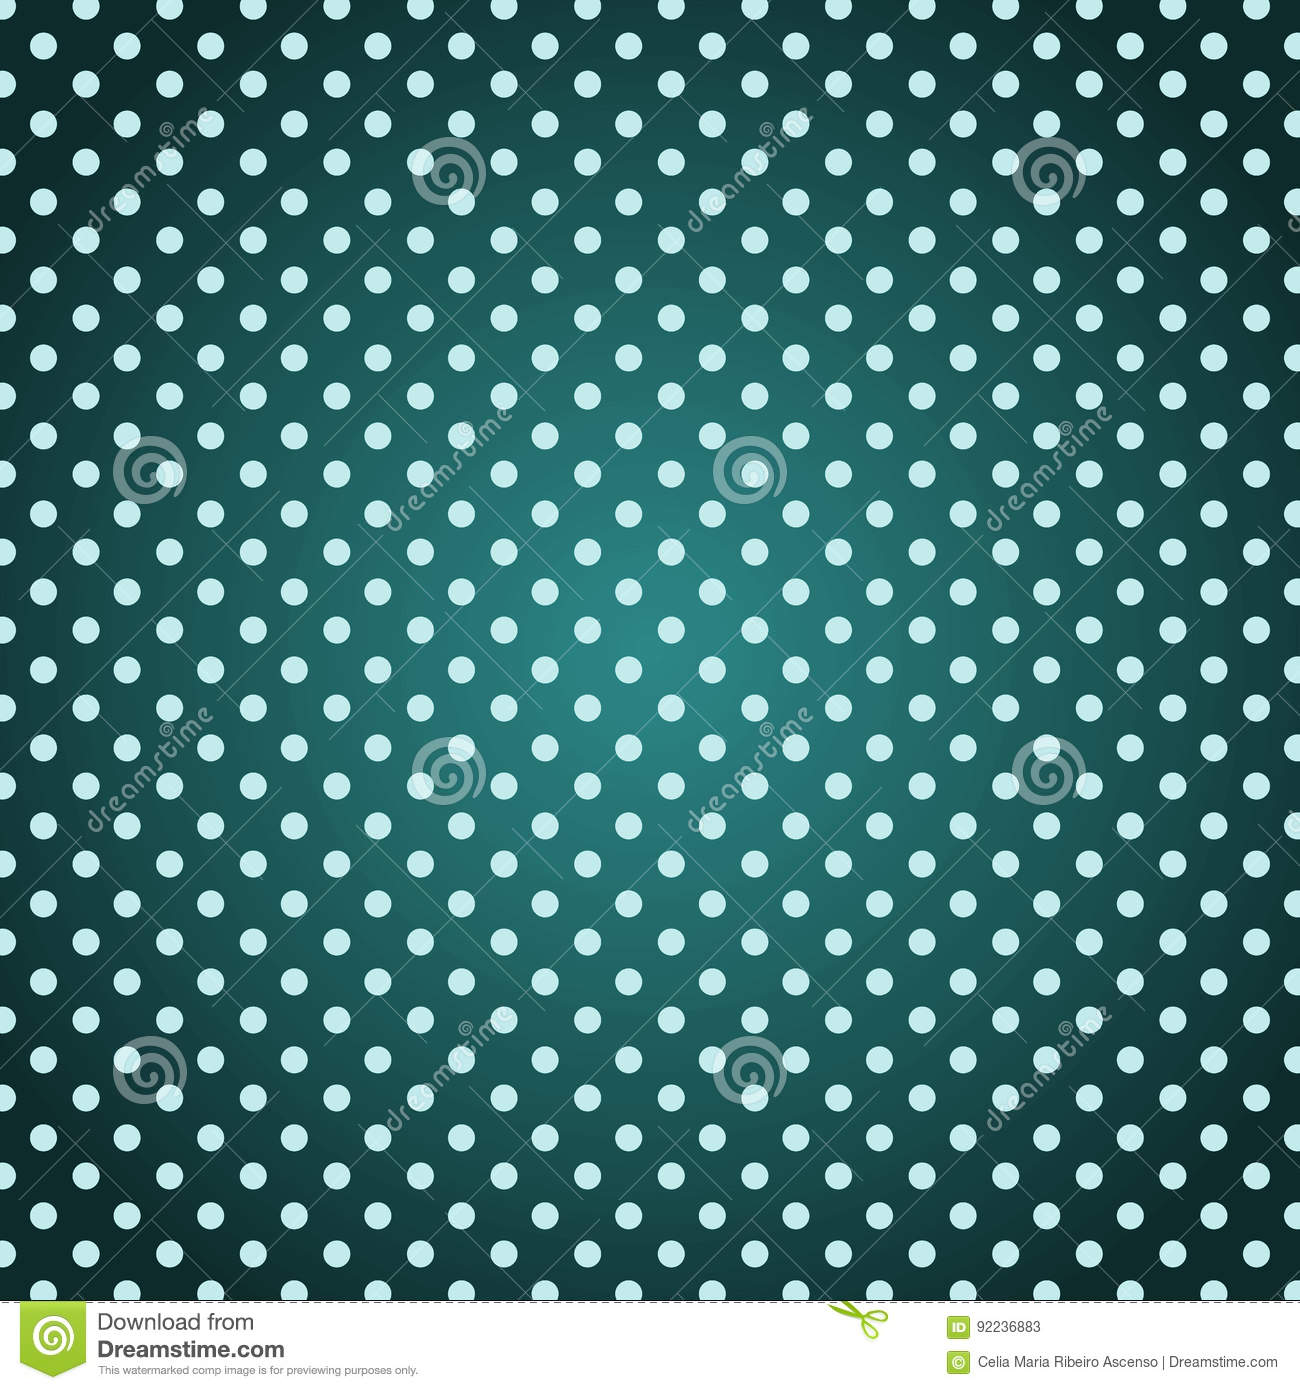 Grunge background polka dots